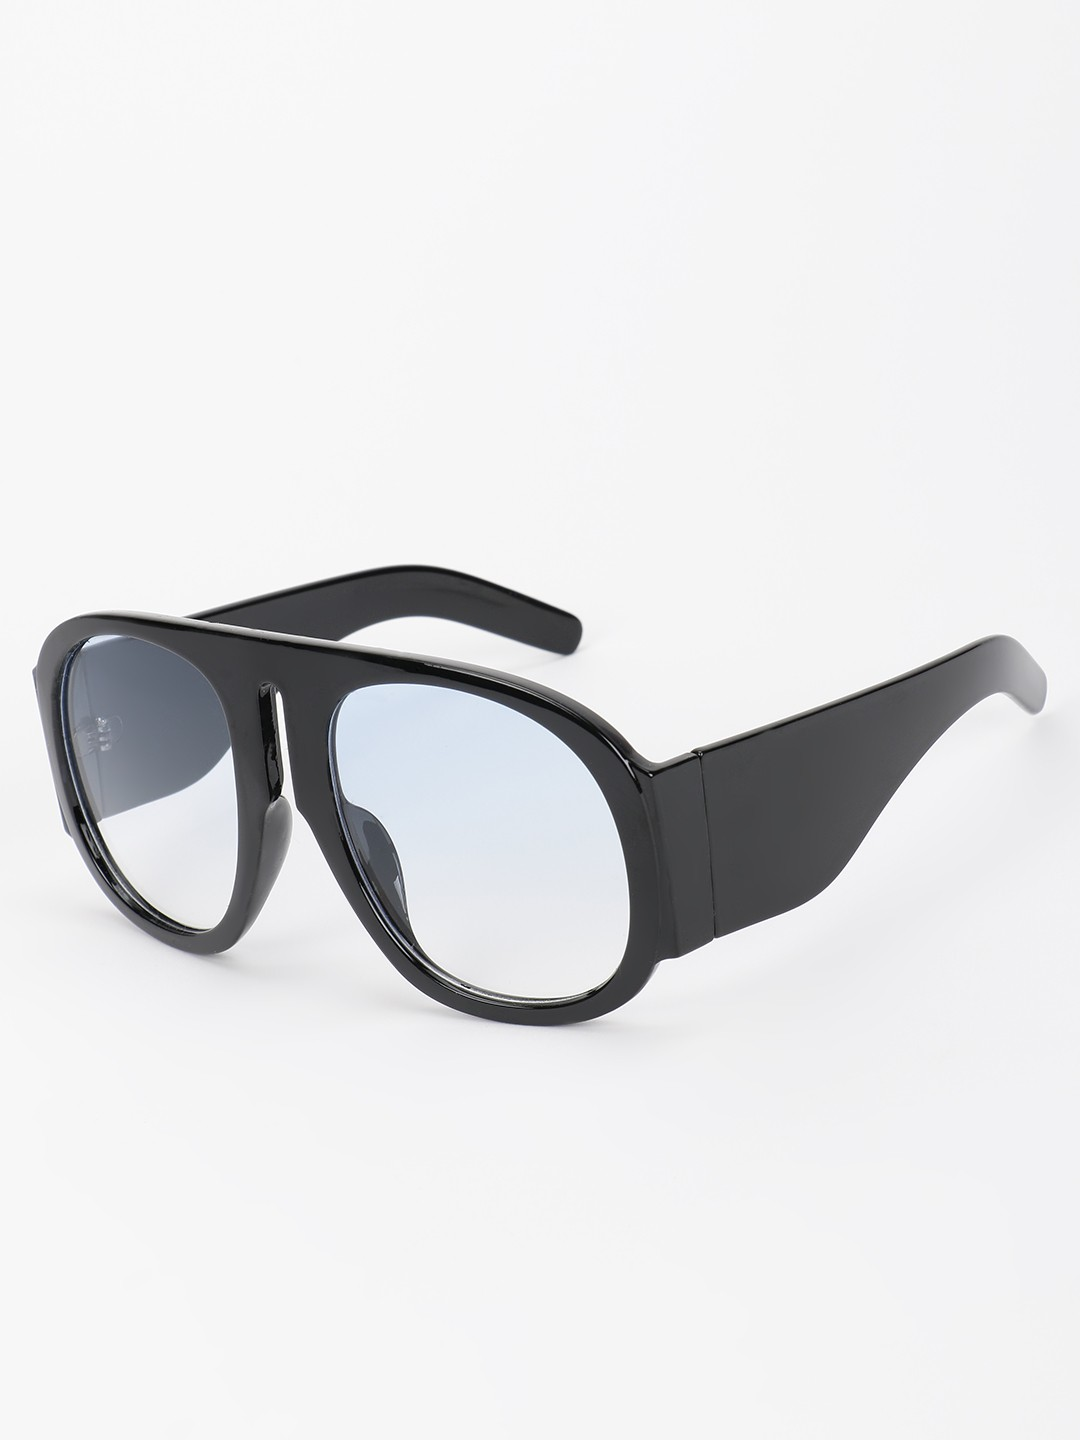 Pataaka Black Broad Frame Pilot Sunglasses 1